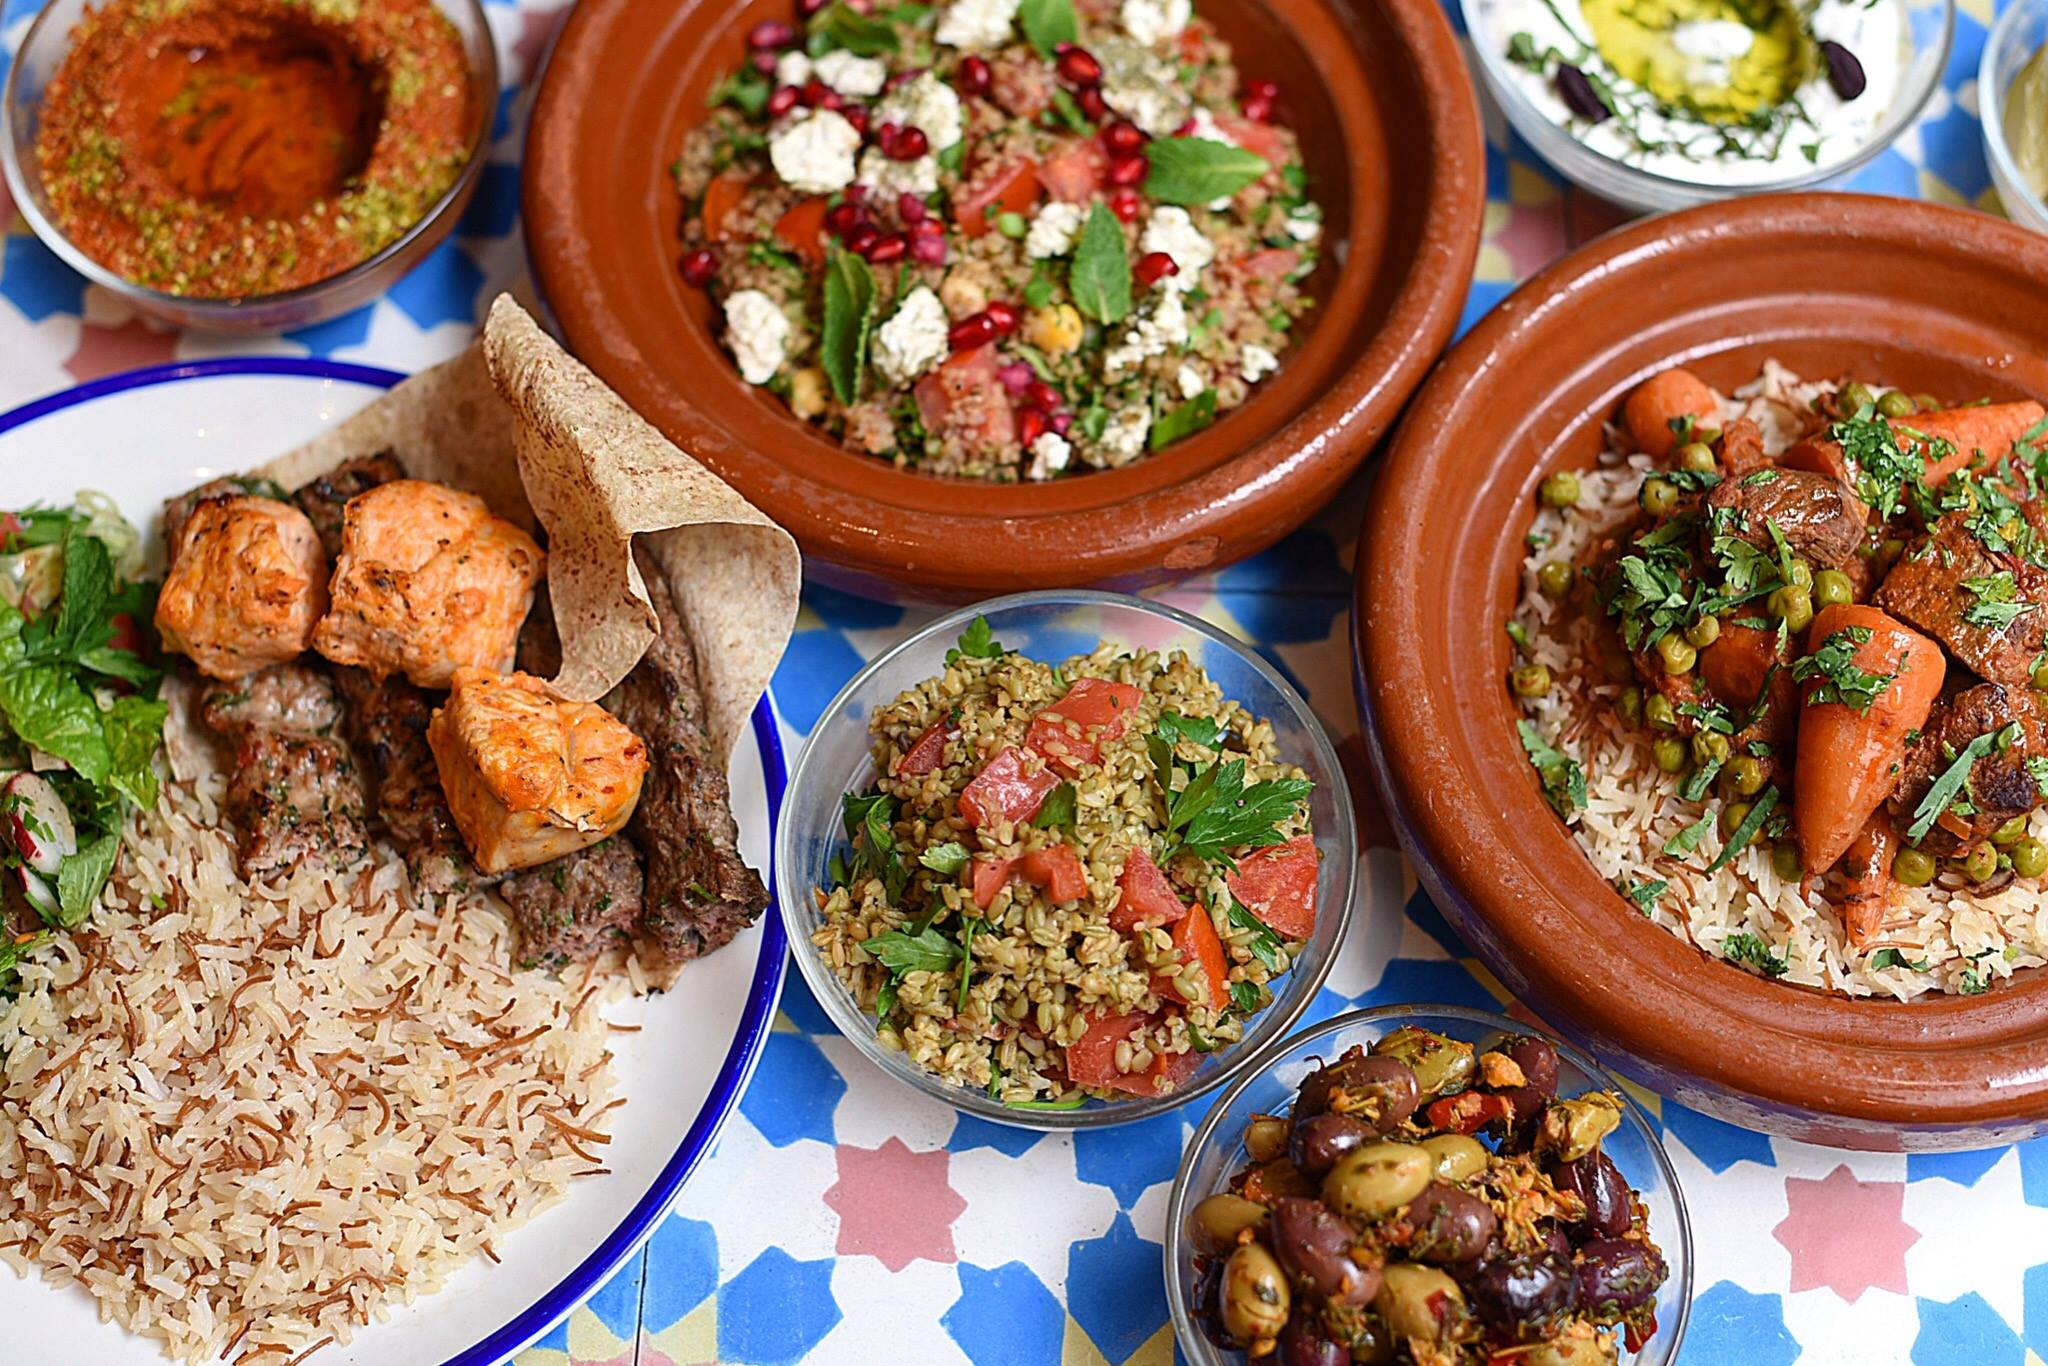 City Pantry - Healthy Lunches London - Comptoir Libanais